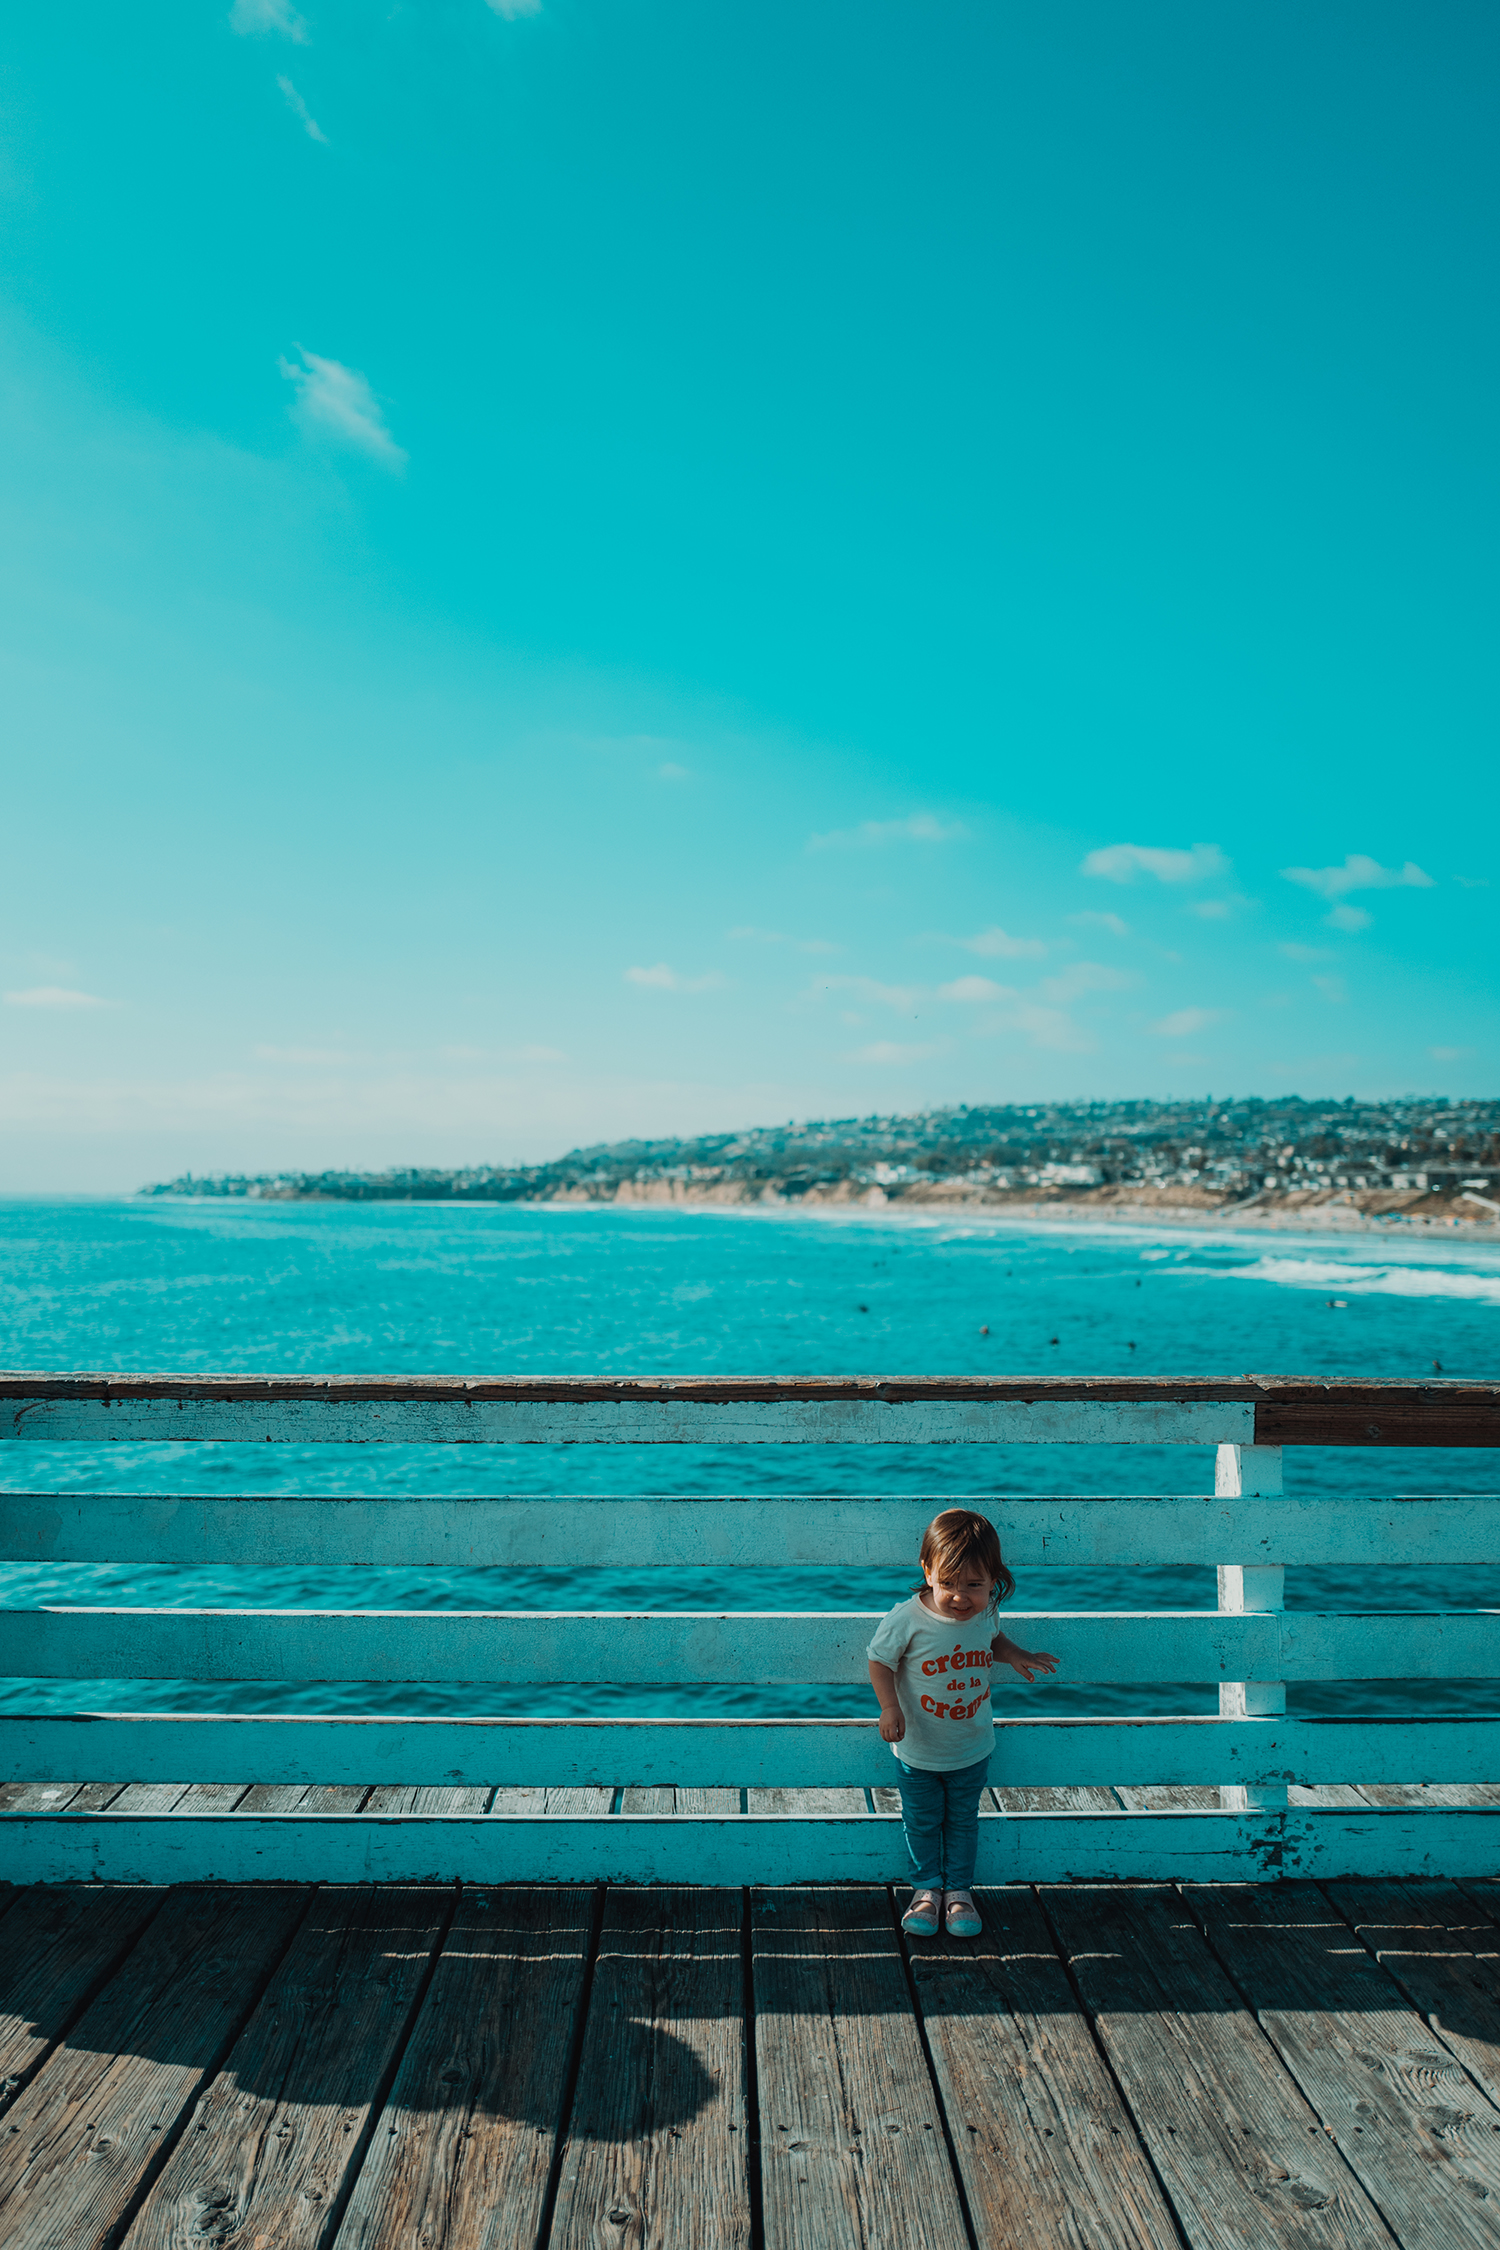 A kid on the pier